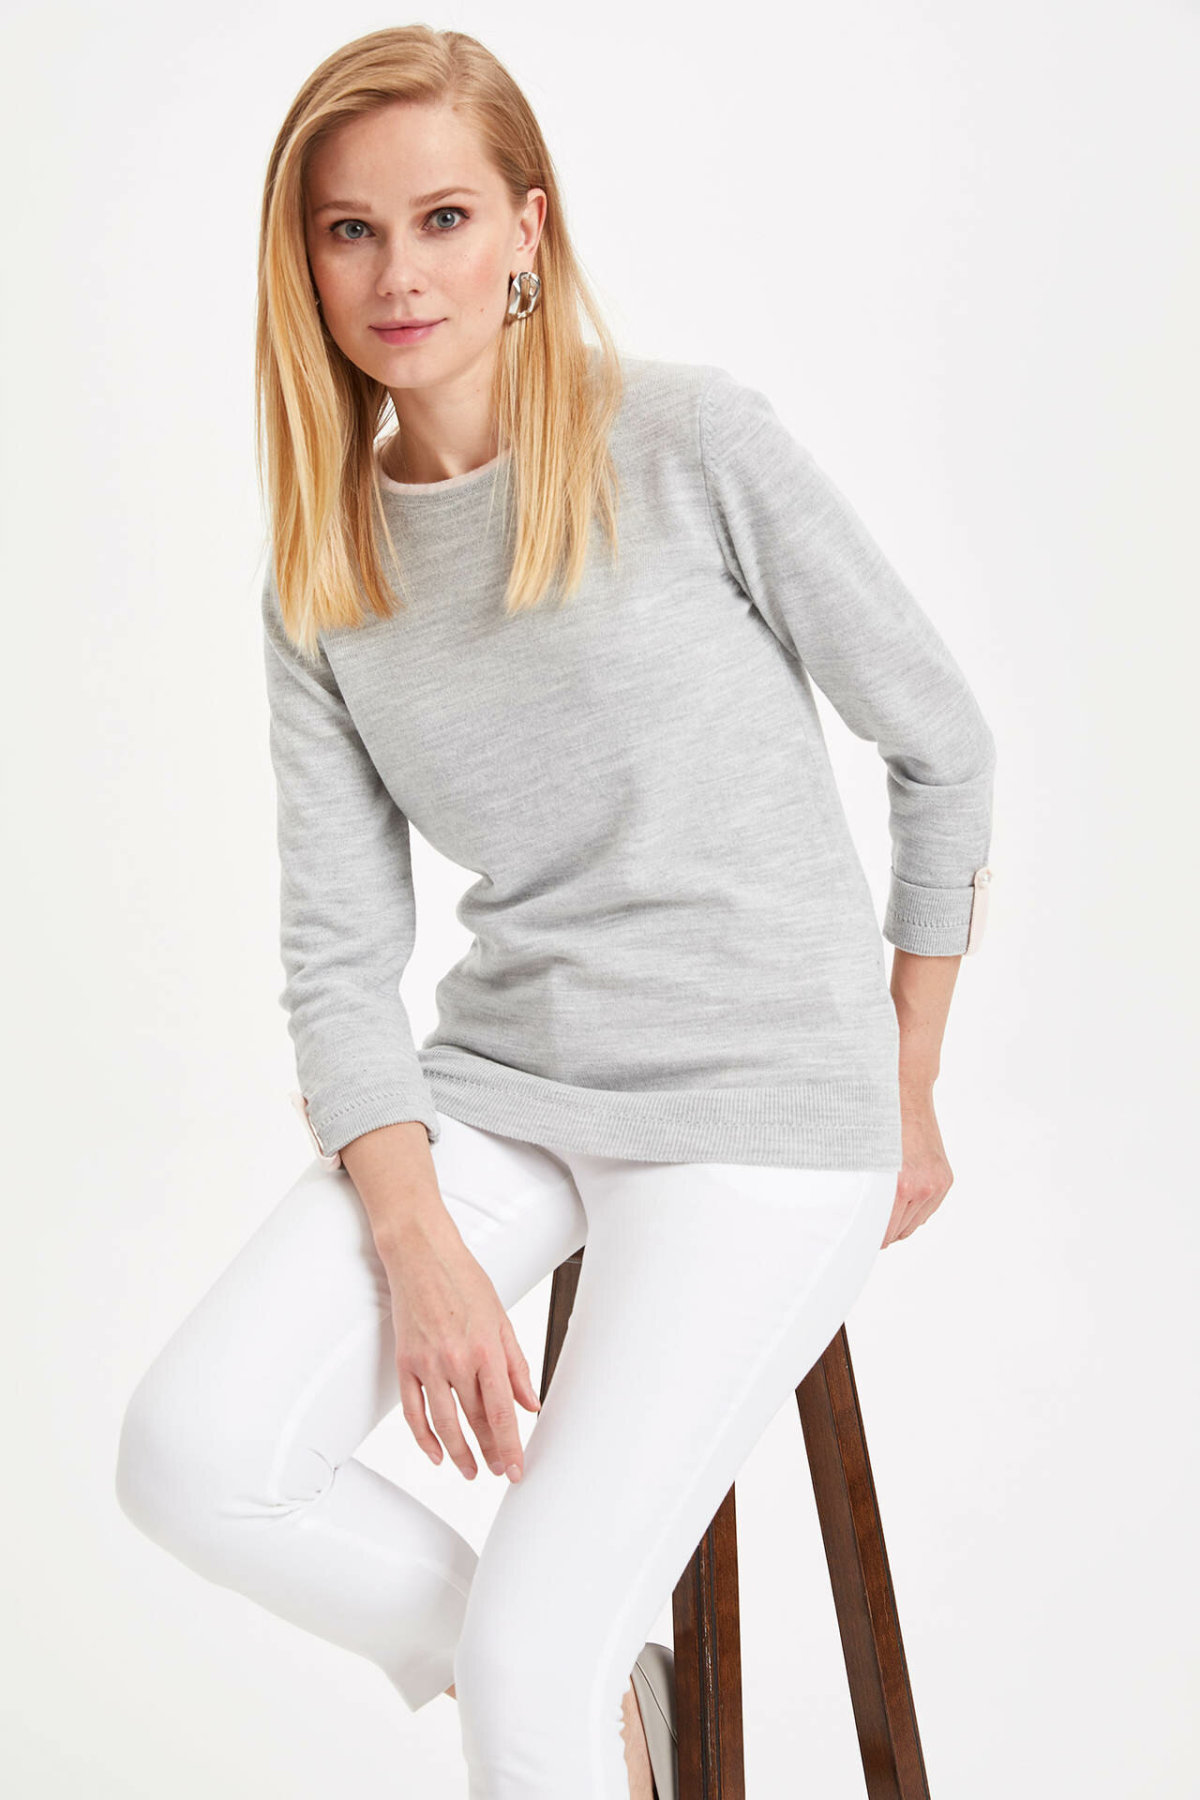 DeFacto Women Autumn White Grey Light Color Pullover Elegent All Match Long Sleeve Female Top Shirts Comfortable-I8235AZ19AU